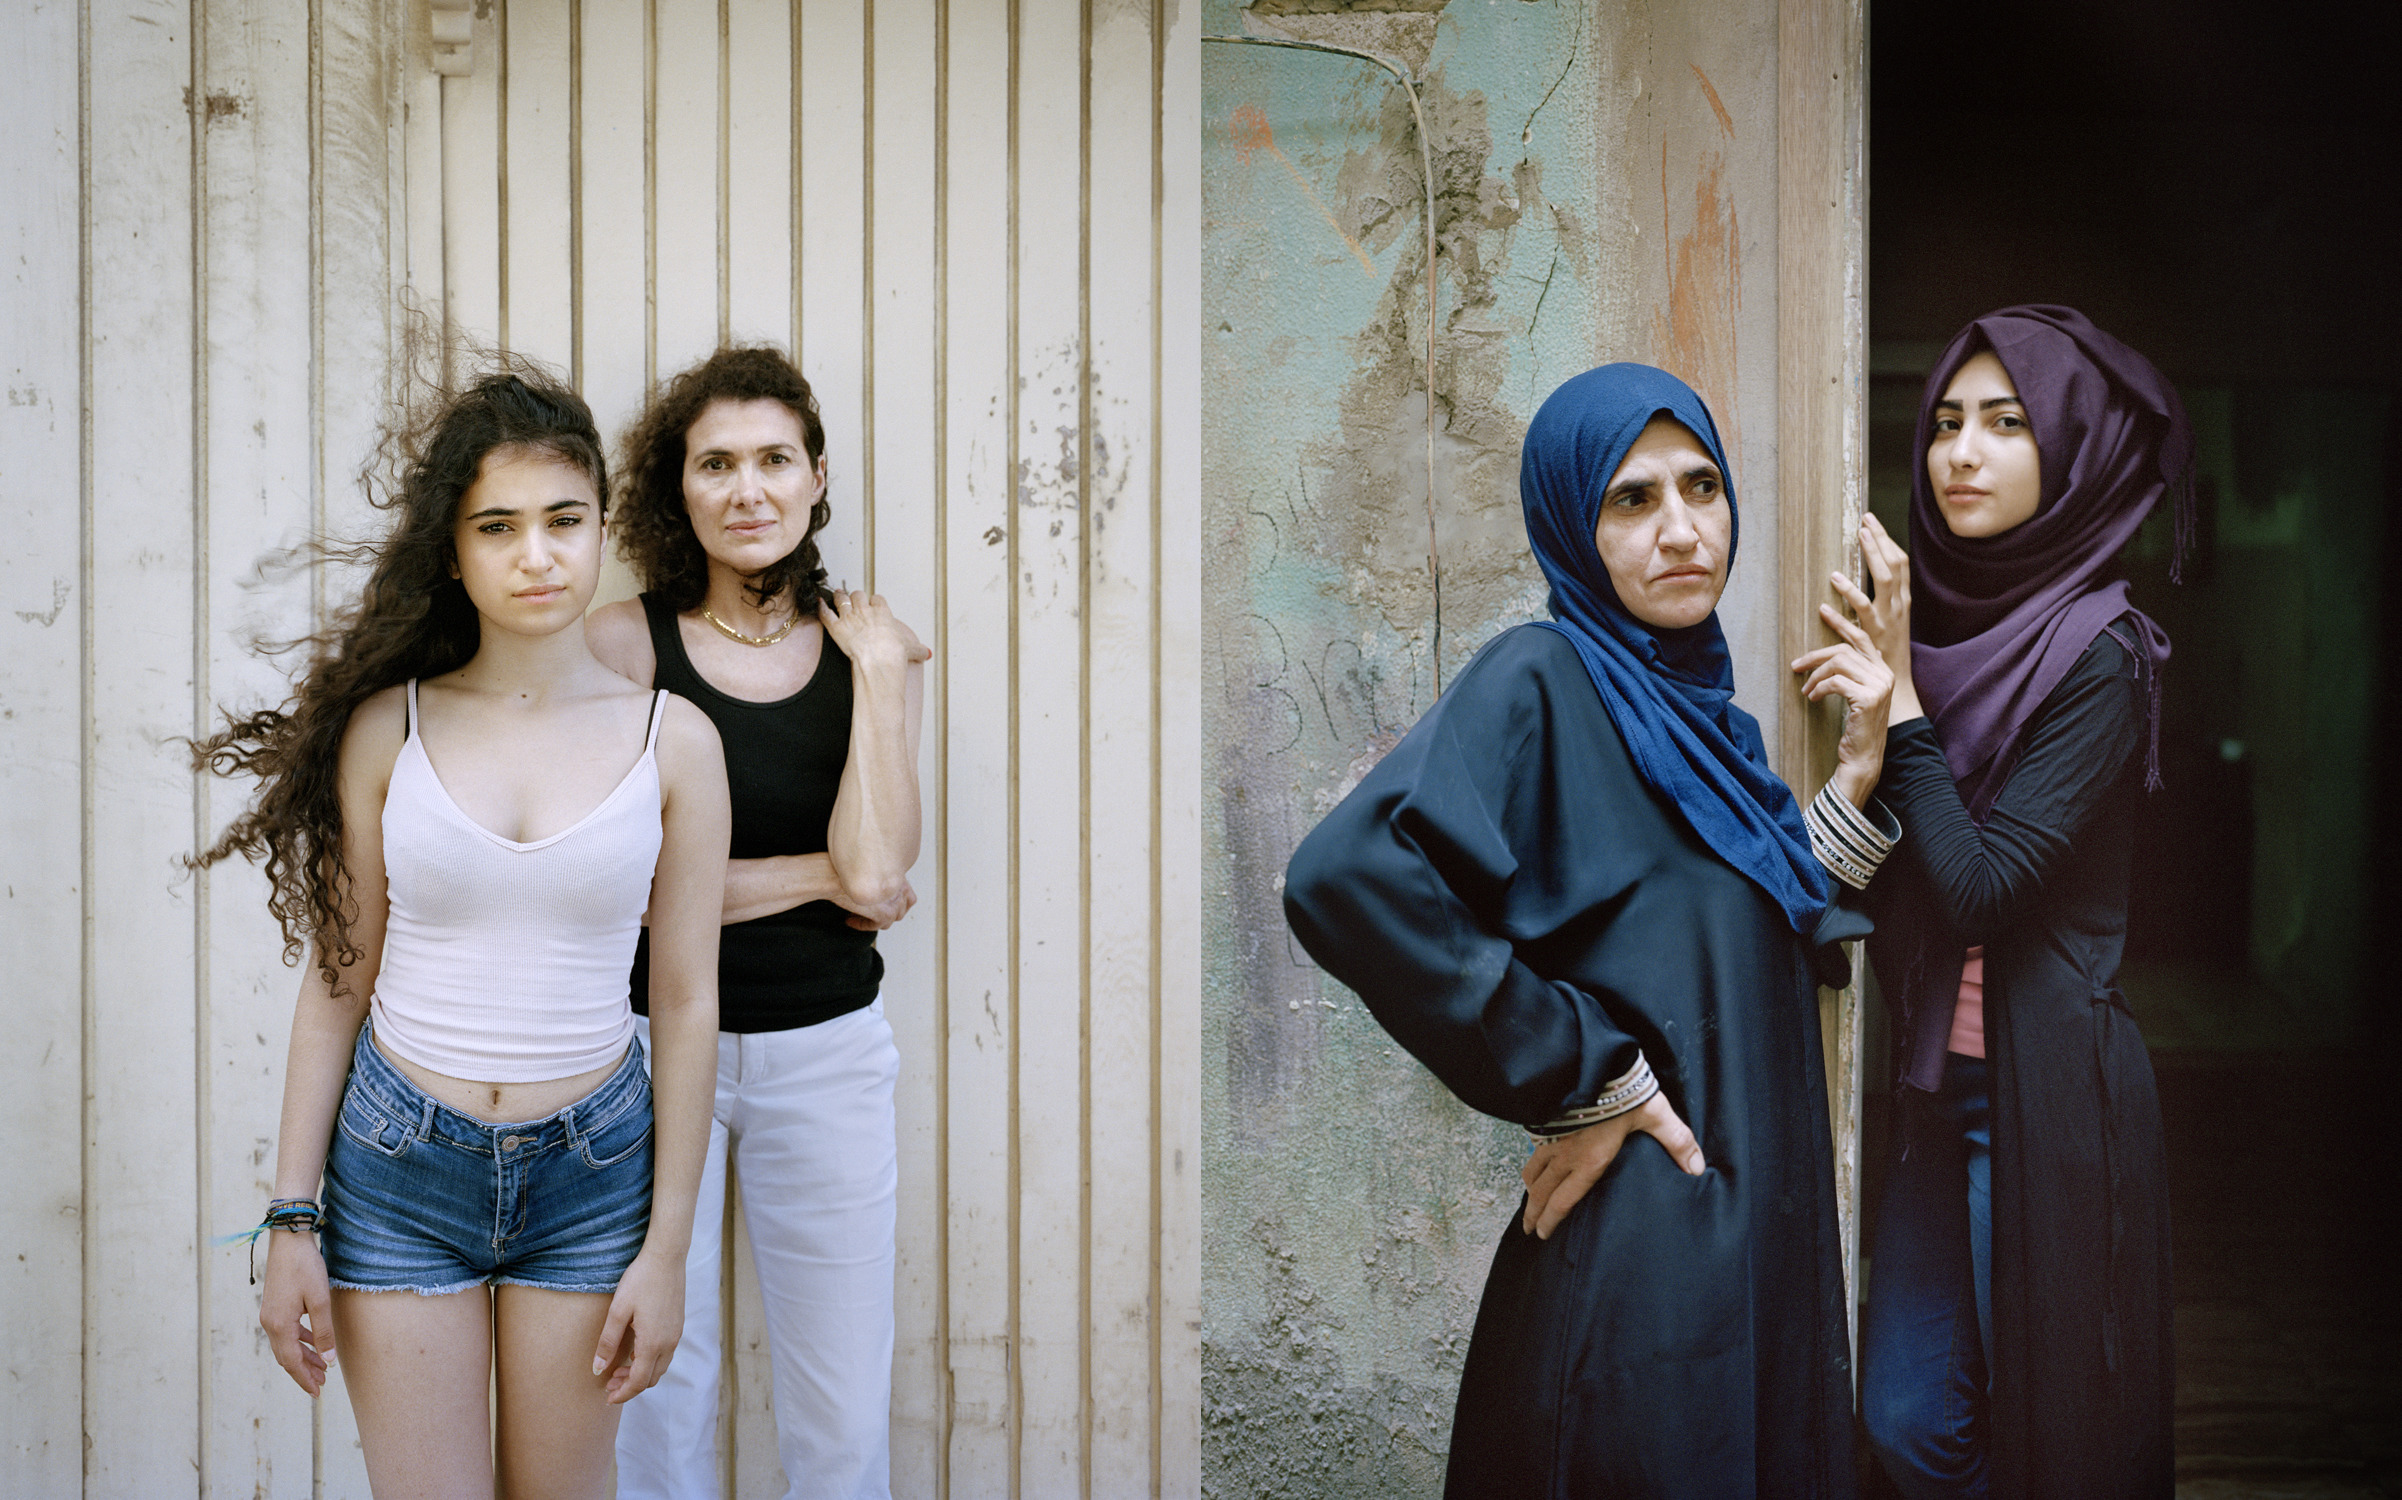 Rania Matar, (L) Jacqueline and Juliette, Beirut, Lebanon and (R) Wafa'a and Samira, Bourj El Barajneh Palestinian Refugee Camp, Beirut, Lebanon. From Unspoken Conversations, 2016. Archival pigment prints mounted on DiBond. 60.9 x 50cm. Image courtesy of the artist